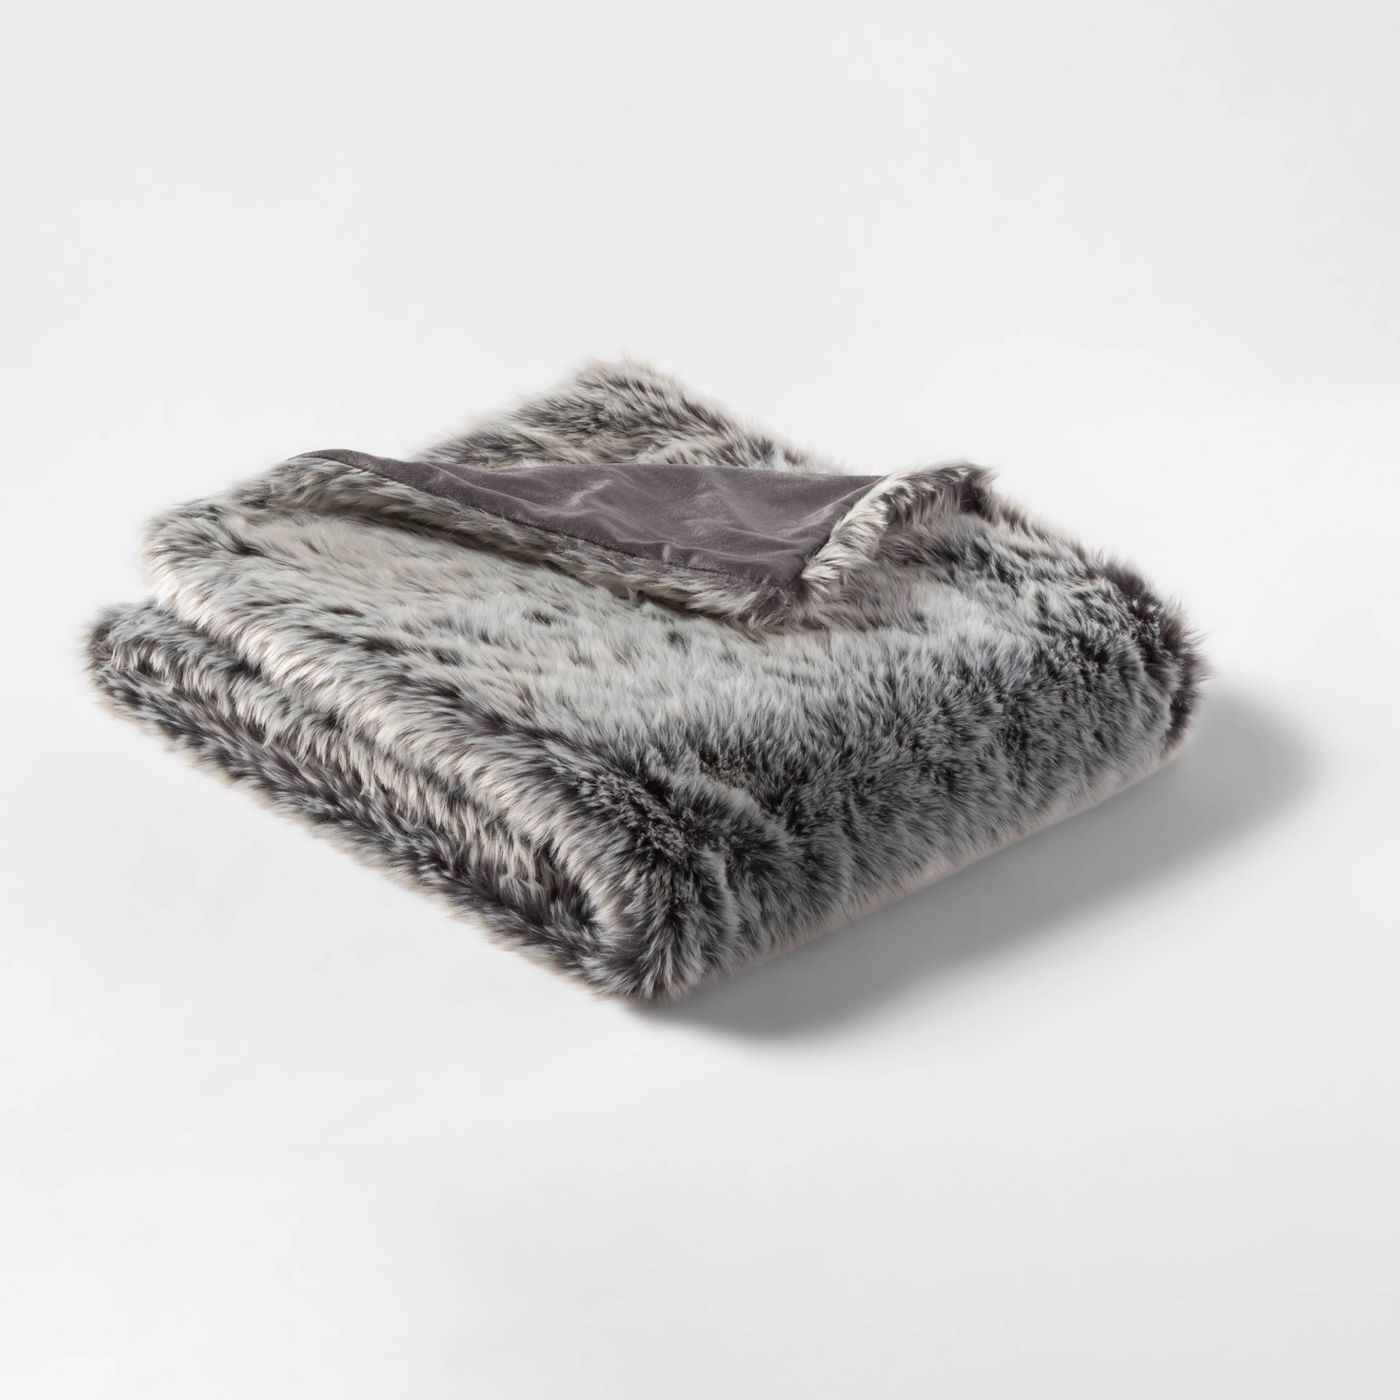 Faux Fur Throw Neutral/Gray - Threshold™ - image 1 of 2